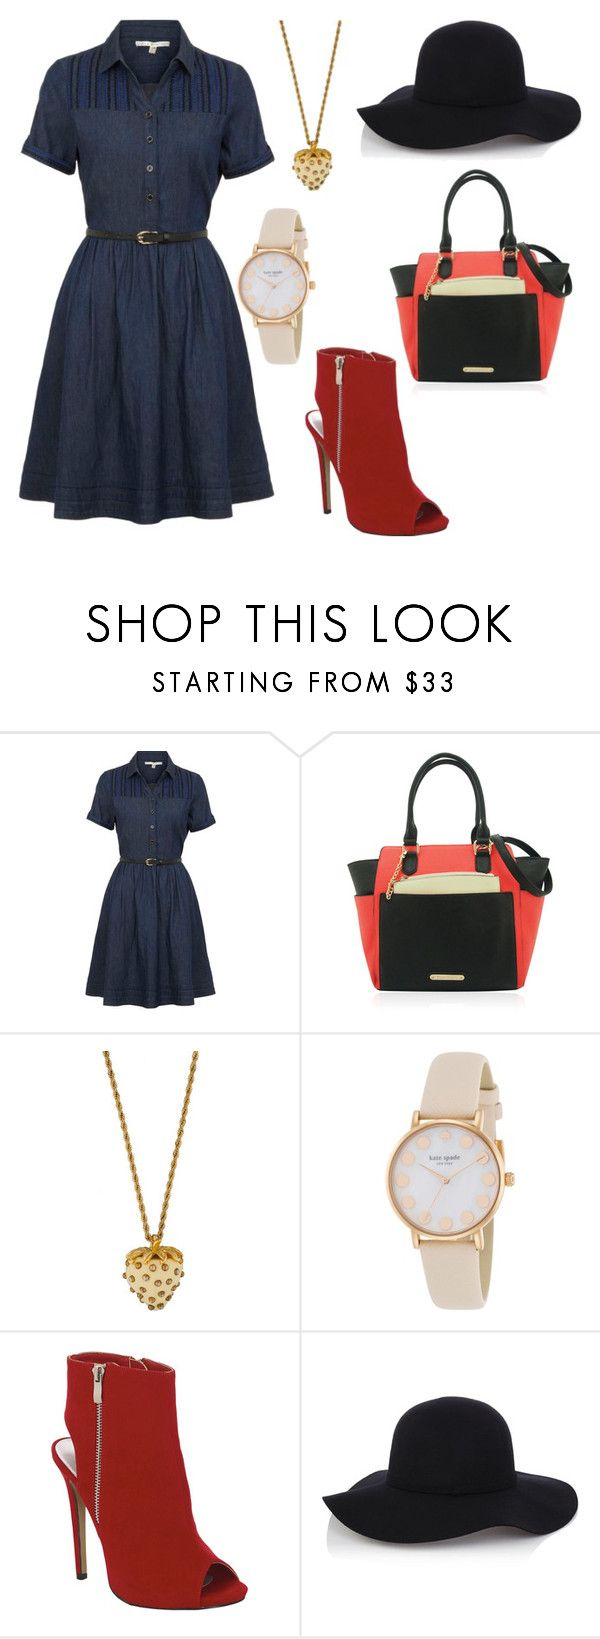 """""""You are every reason, every hope and every dream I've ever had ― Nicholas Sparks (The Notebook)"""" by emma-oloughlin ❤ liked on Polyvore featuring Uttam Boutique, Kenneth Jay Lane, Kate Spade and Warehouse"""